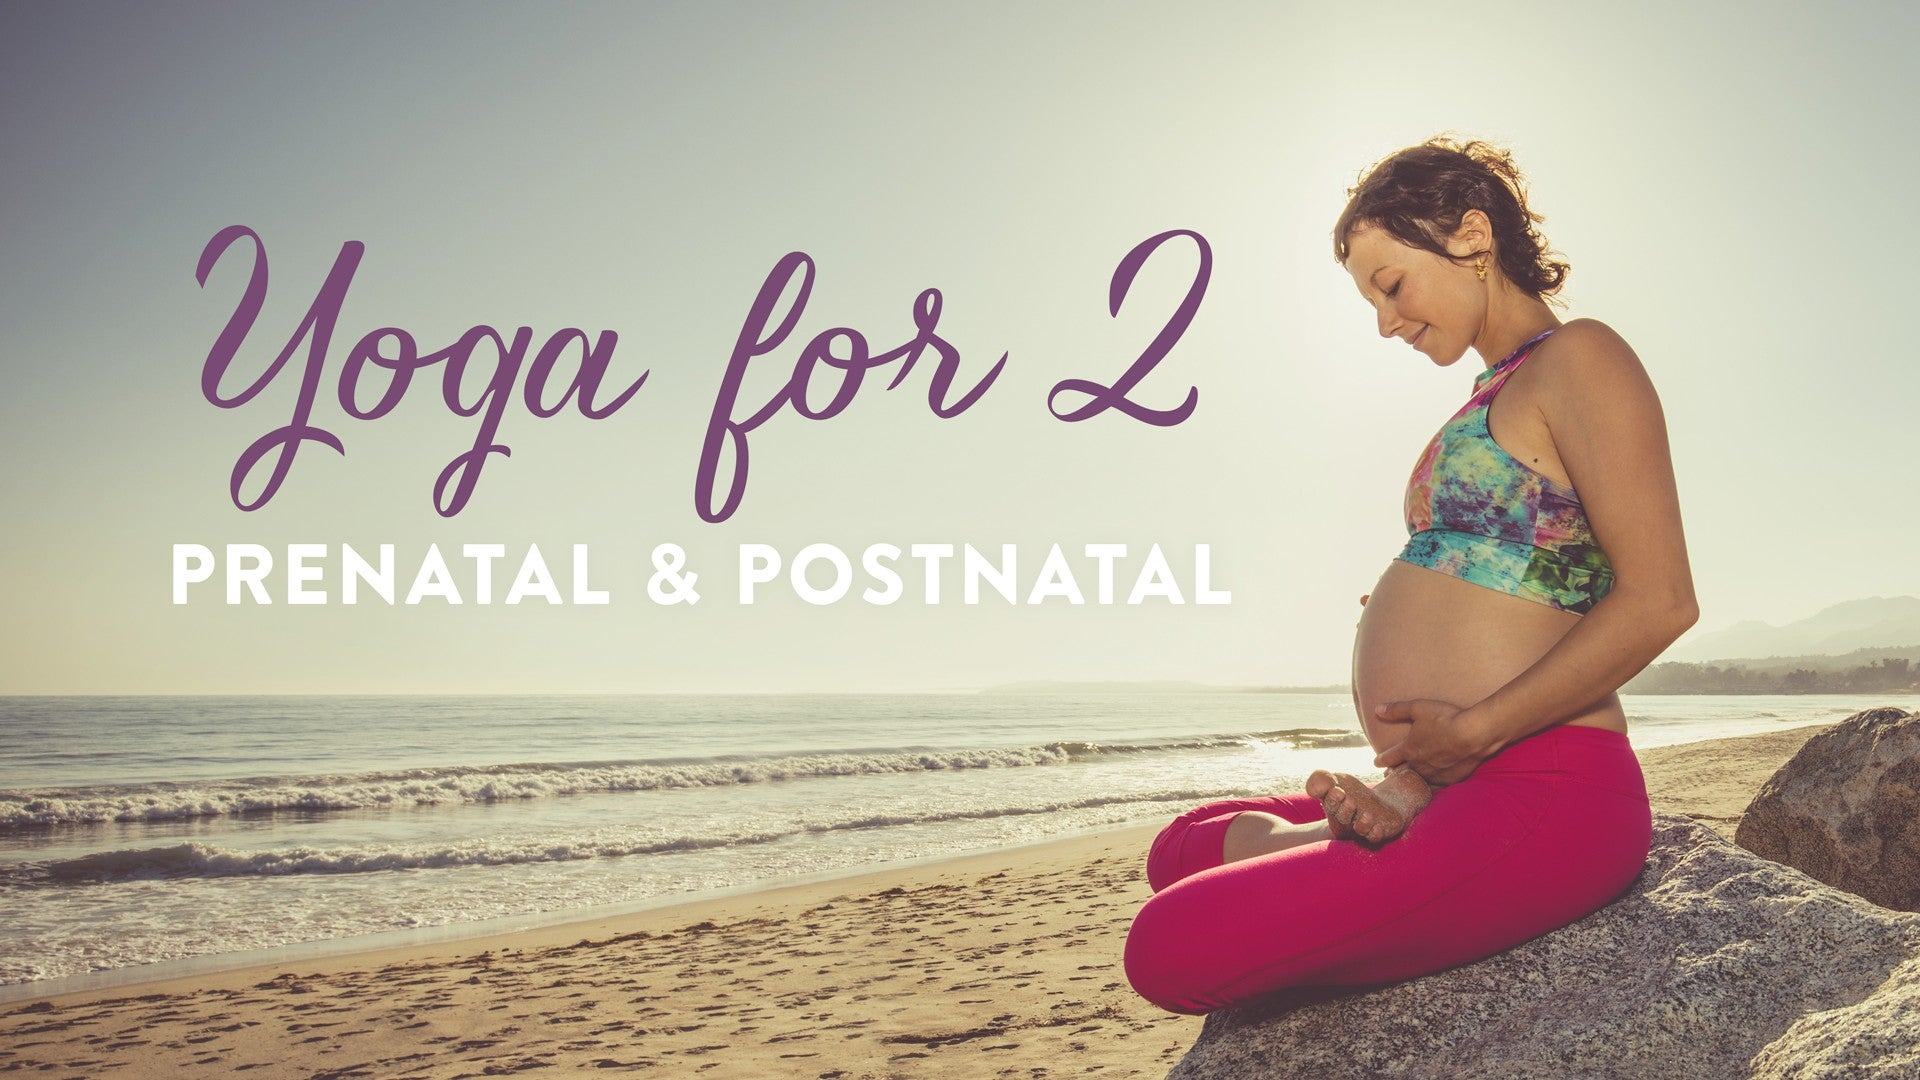 Yoga for 2: Prenatal and Postnatal Artwork